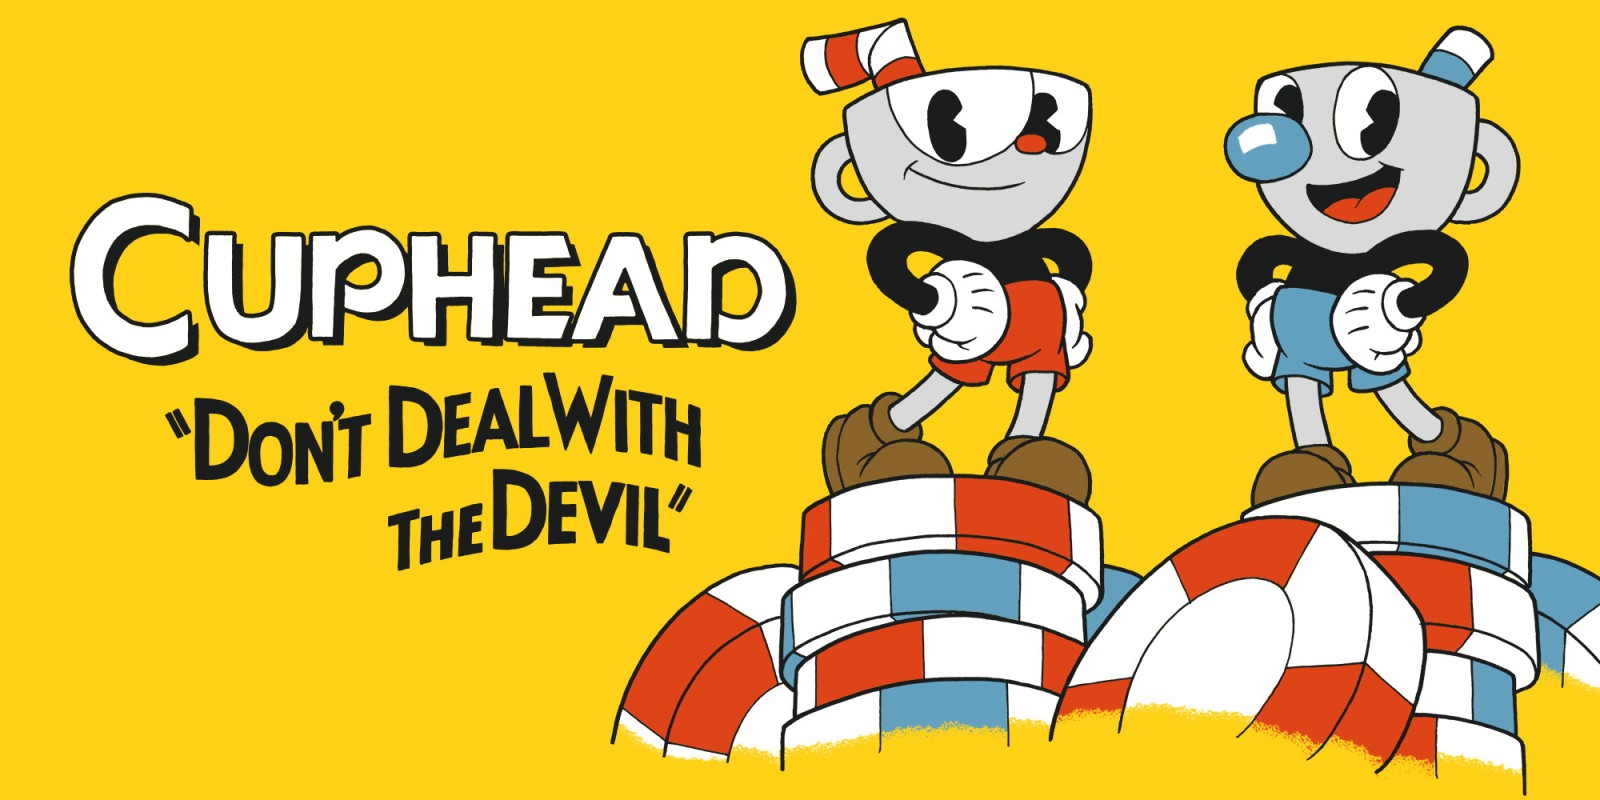 Cuphead | Nintendo Switch download software | Games | Nintendo